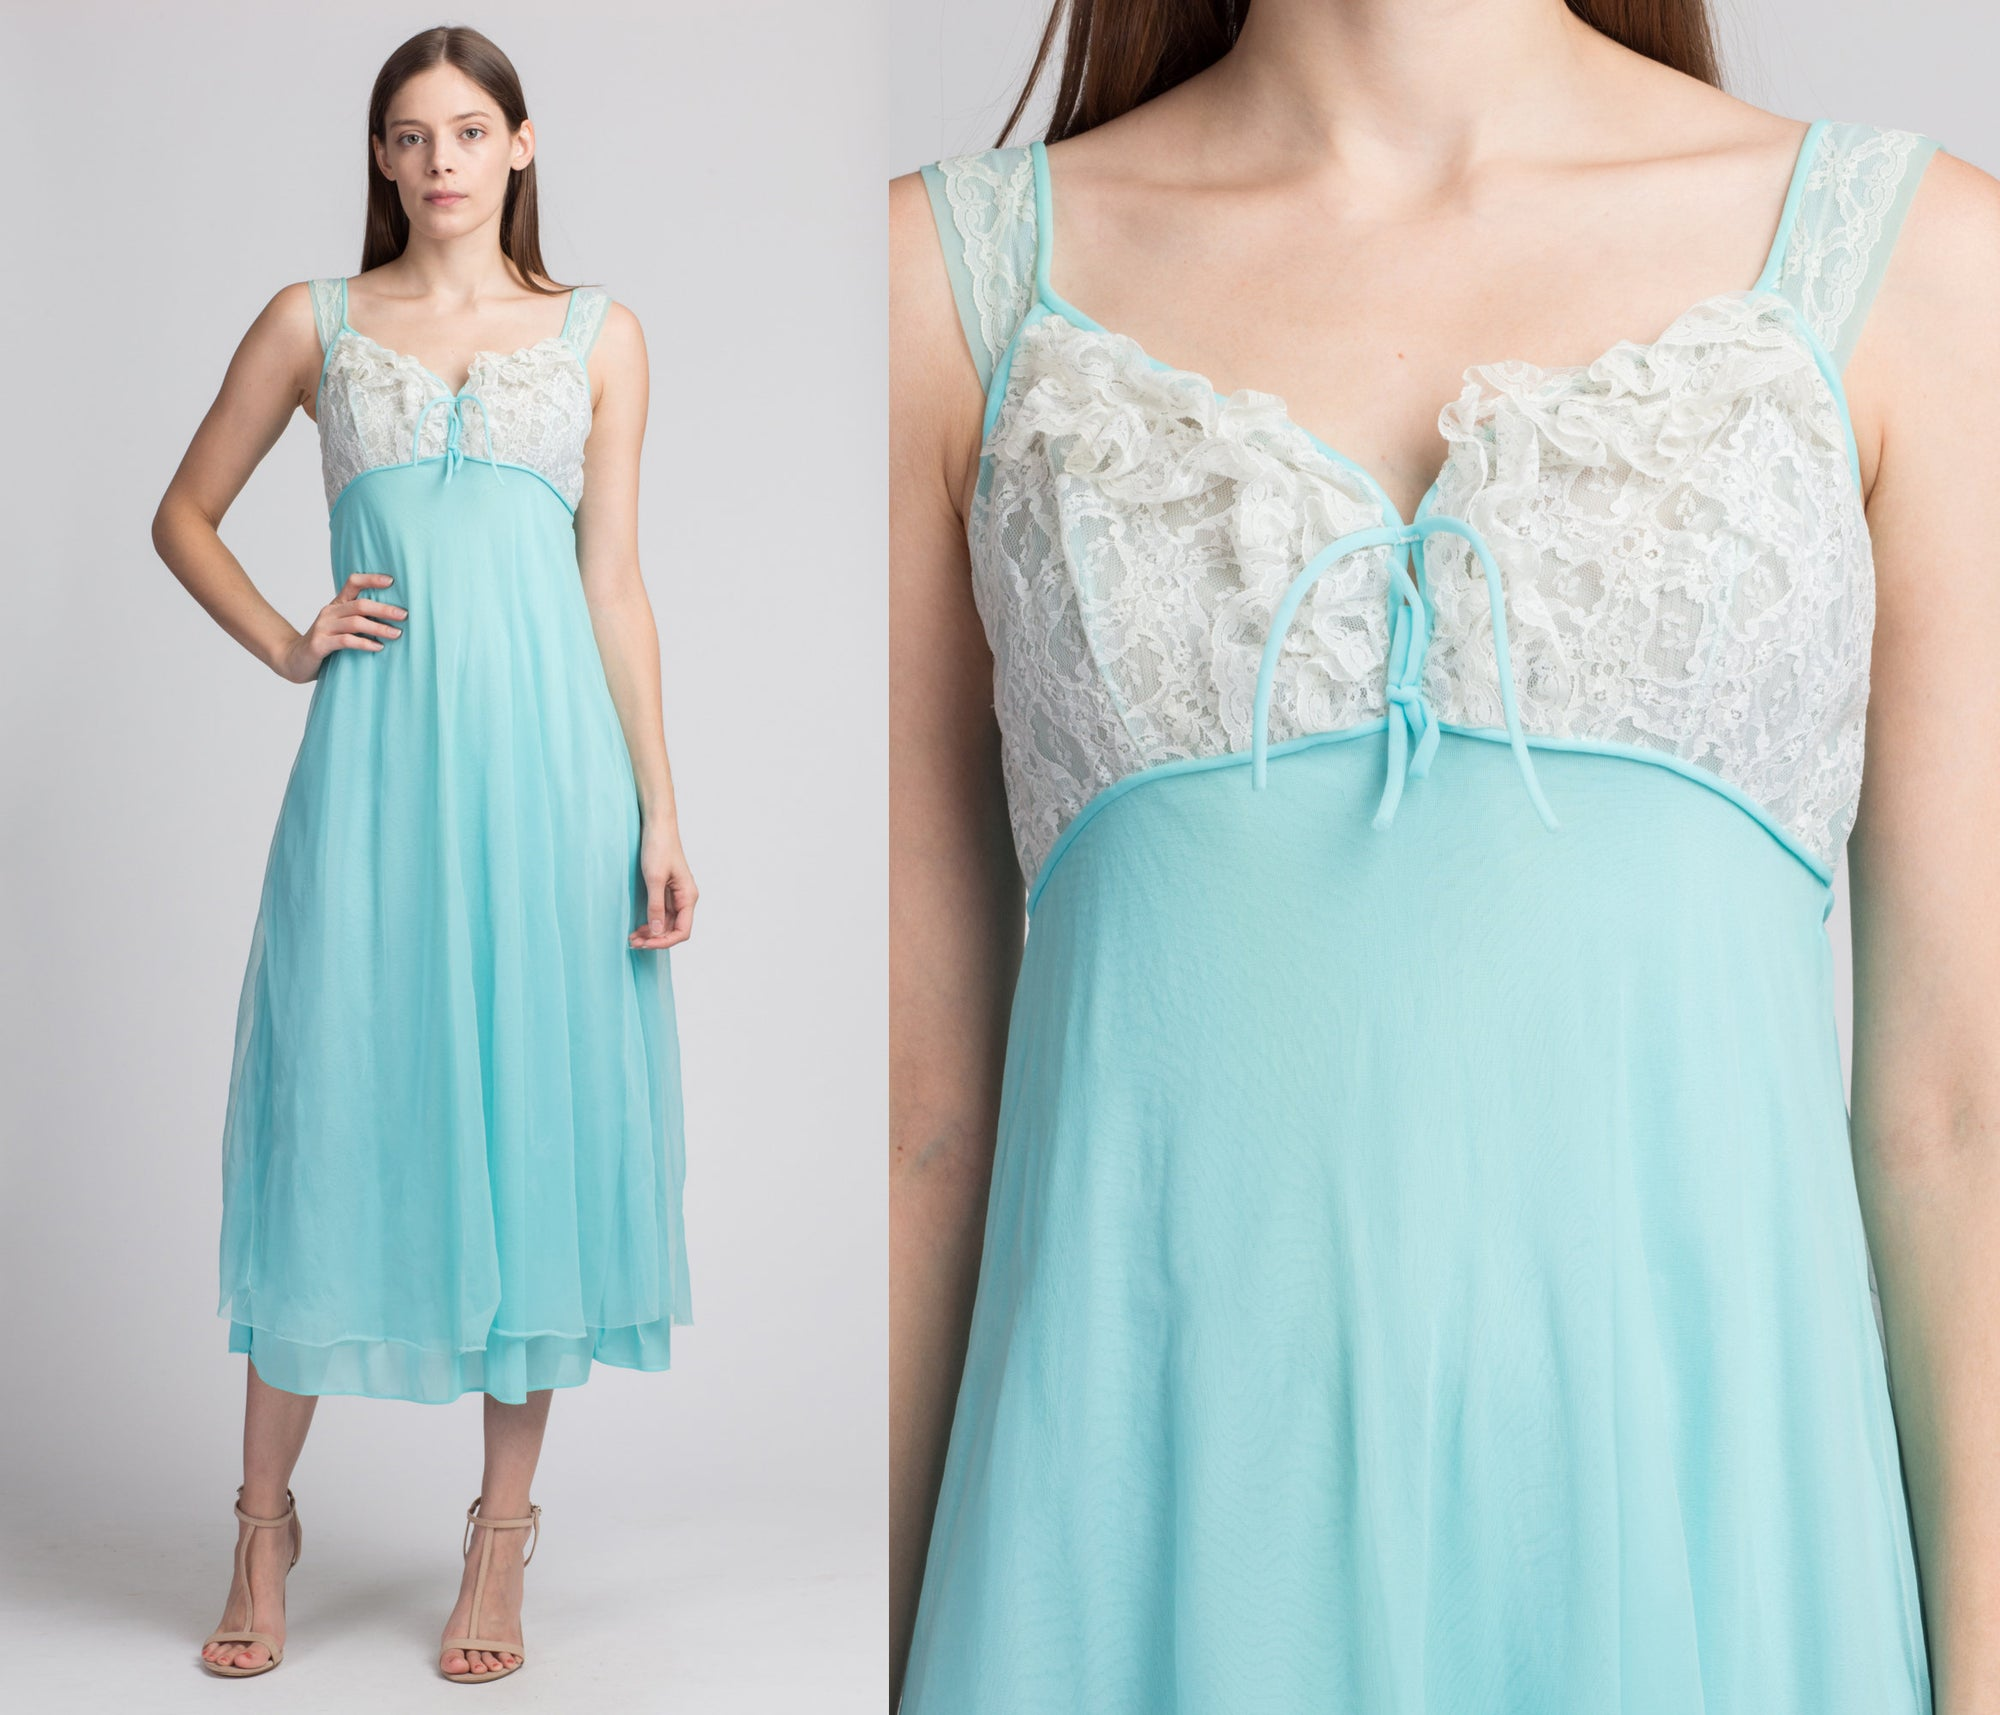 70s Blue Peignoir Nightgown - Small to Medium